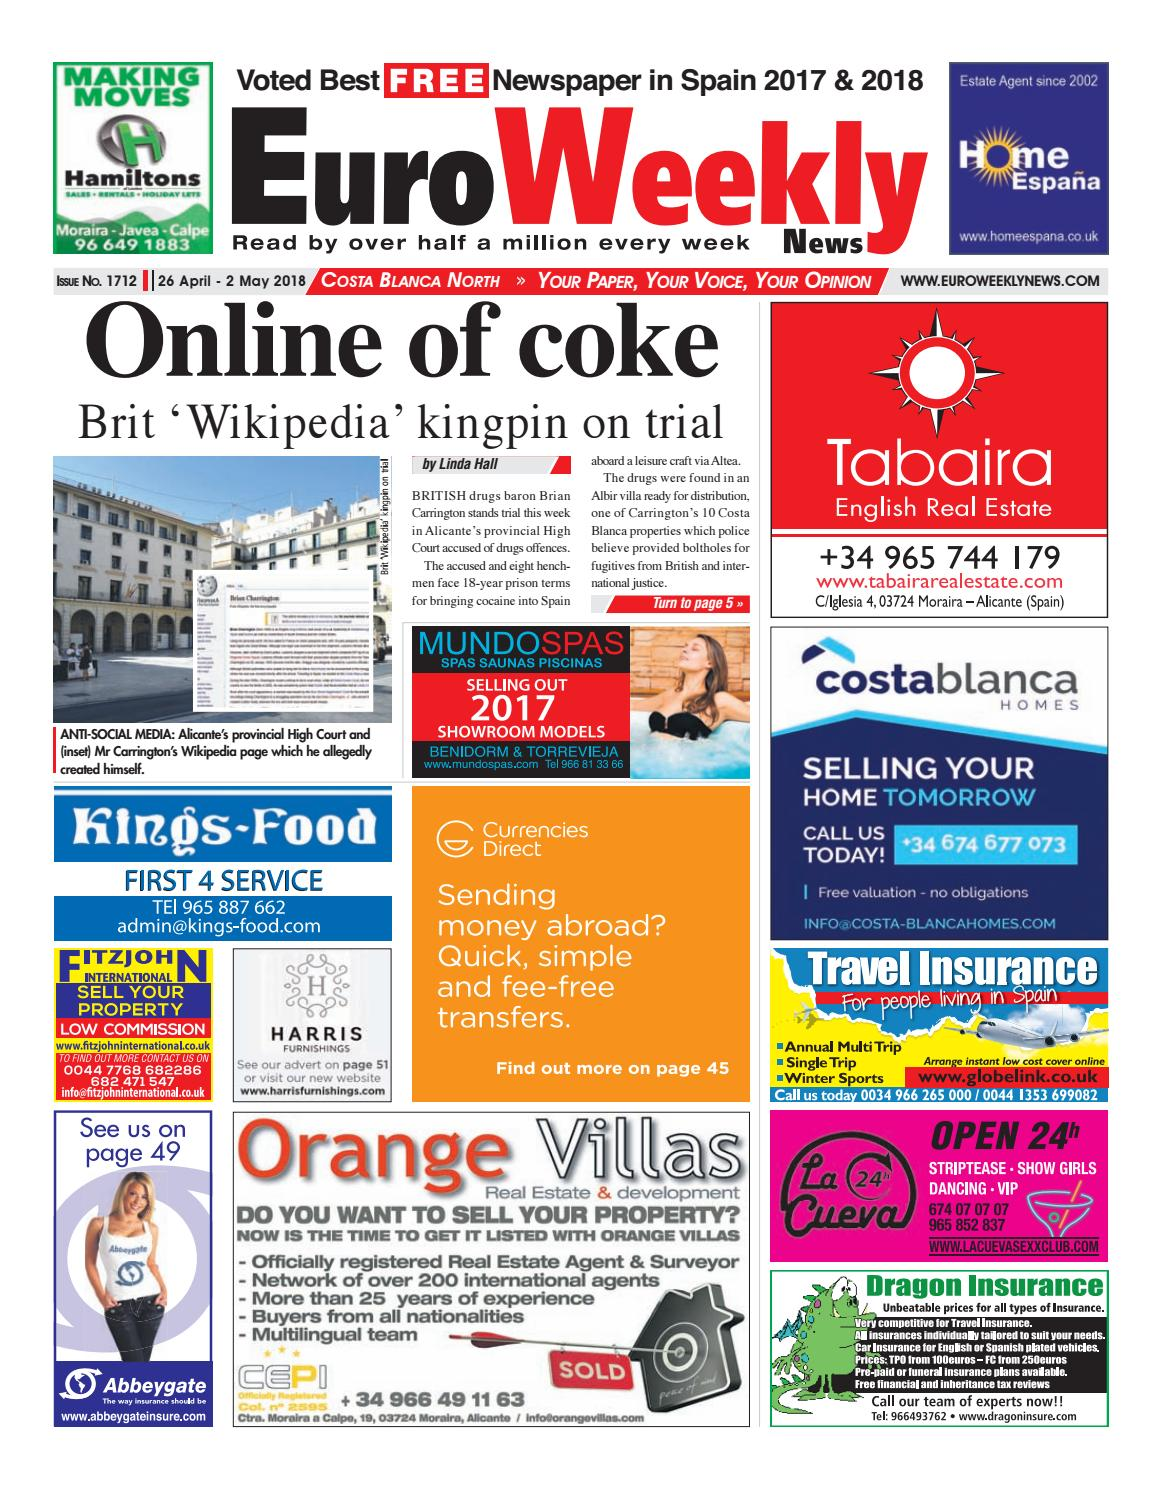 newest 32e7d 088e4 Euro Weekly News - Costa Blanca North 26 April - 2 May 2018 Issue 1712 by  Euro Weekly News Media S.A. - issuu